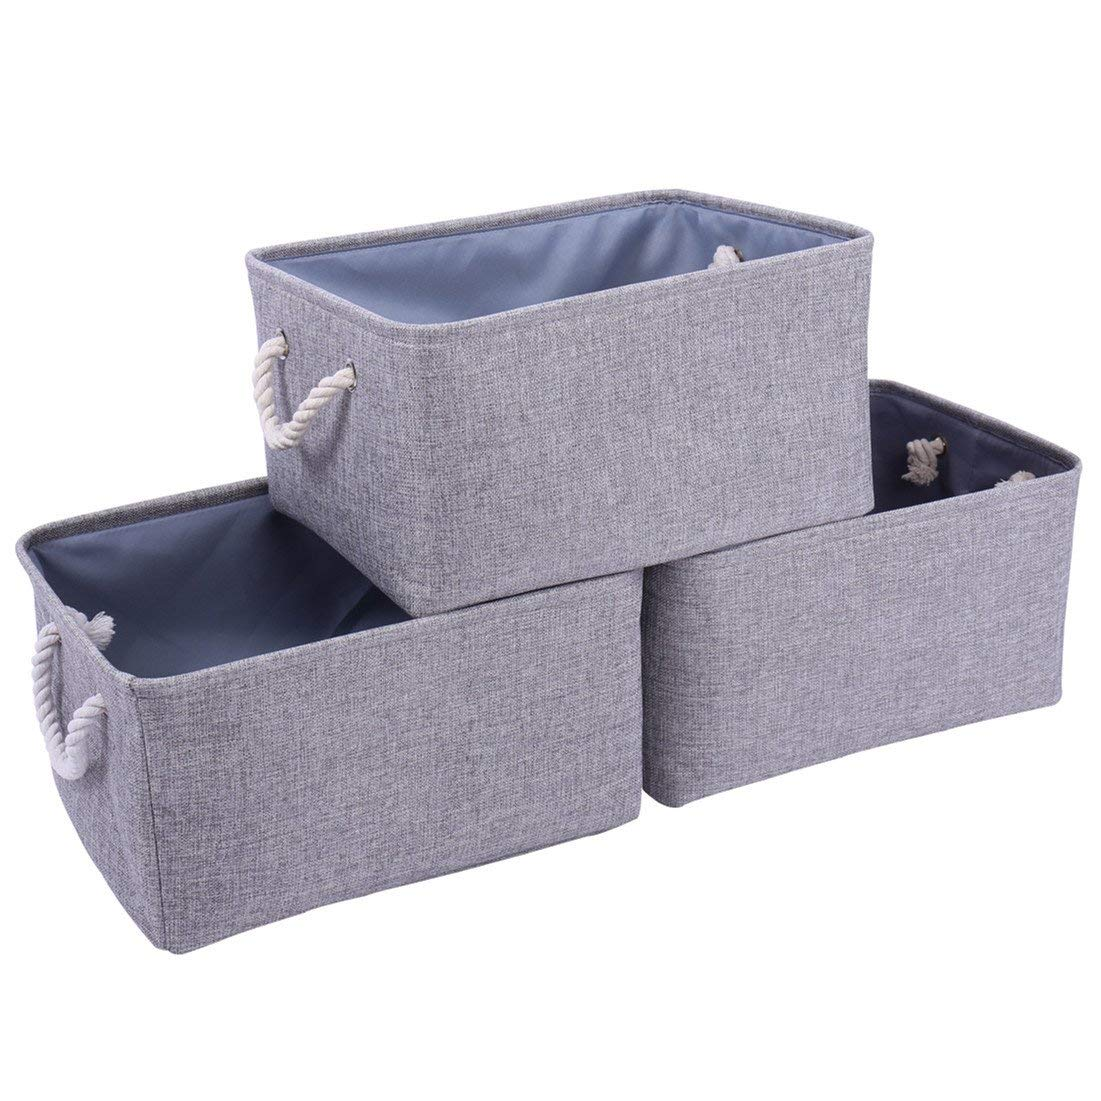 Buy Thewarmhome Storage Bins Baskets For Shelves Fabric